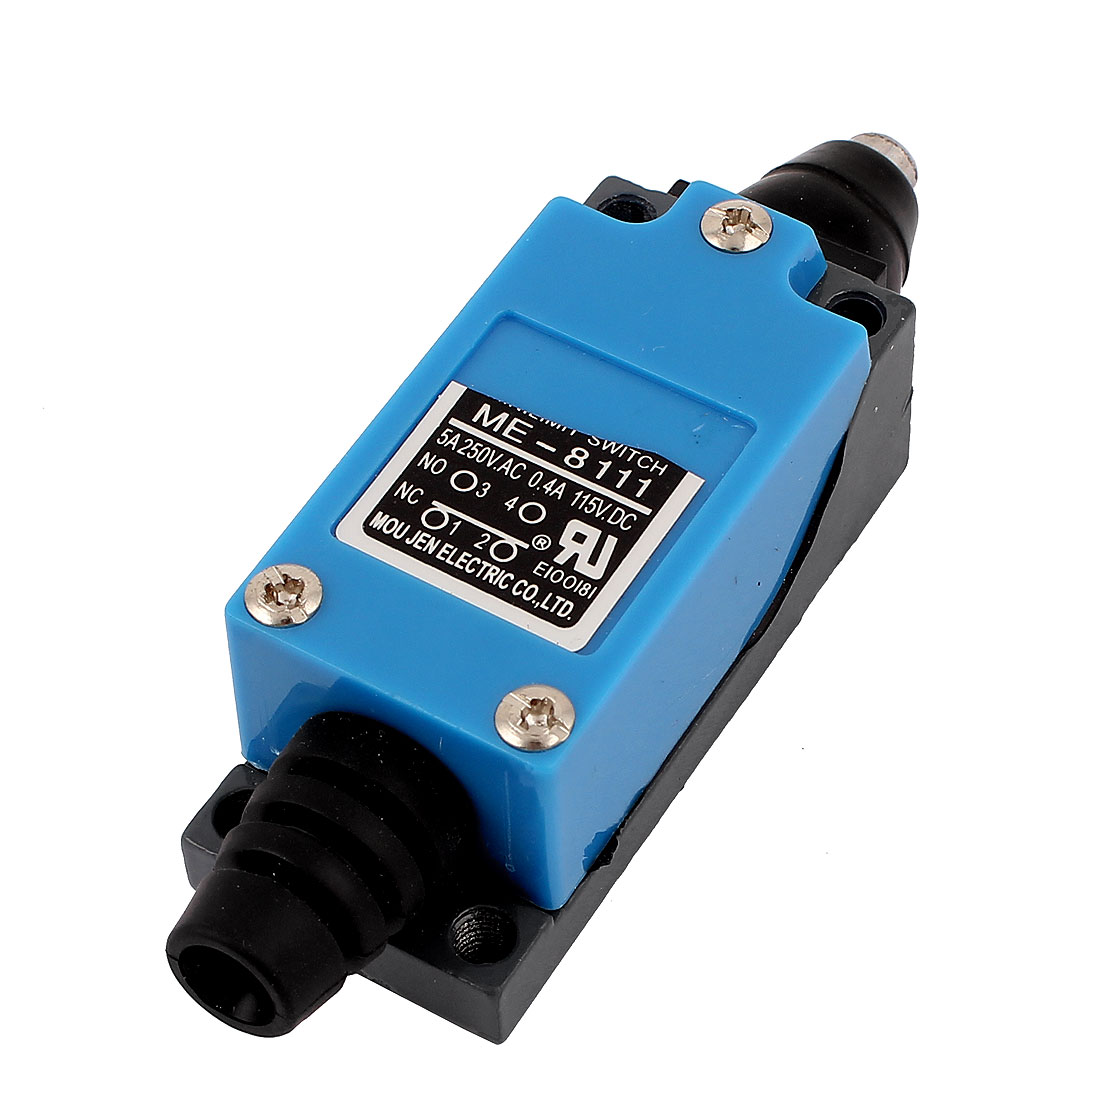 AC 250V 5A DC 115V 0.4A 1NO 1NC DPST Momentary Action Push Plunger Micro Limit Switch